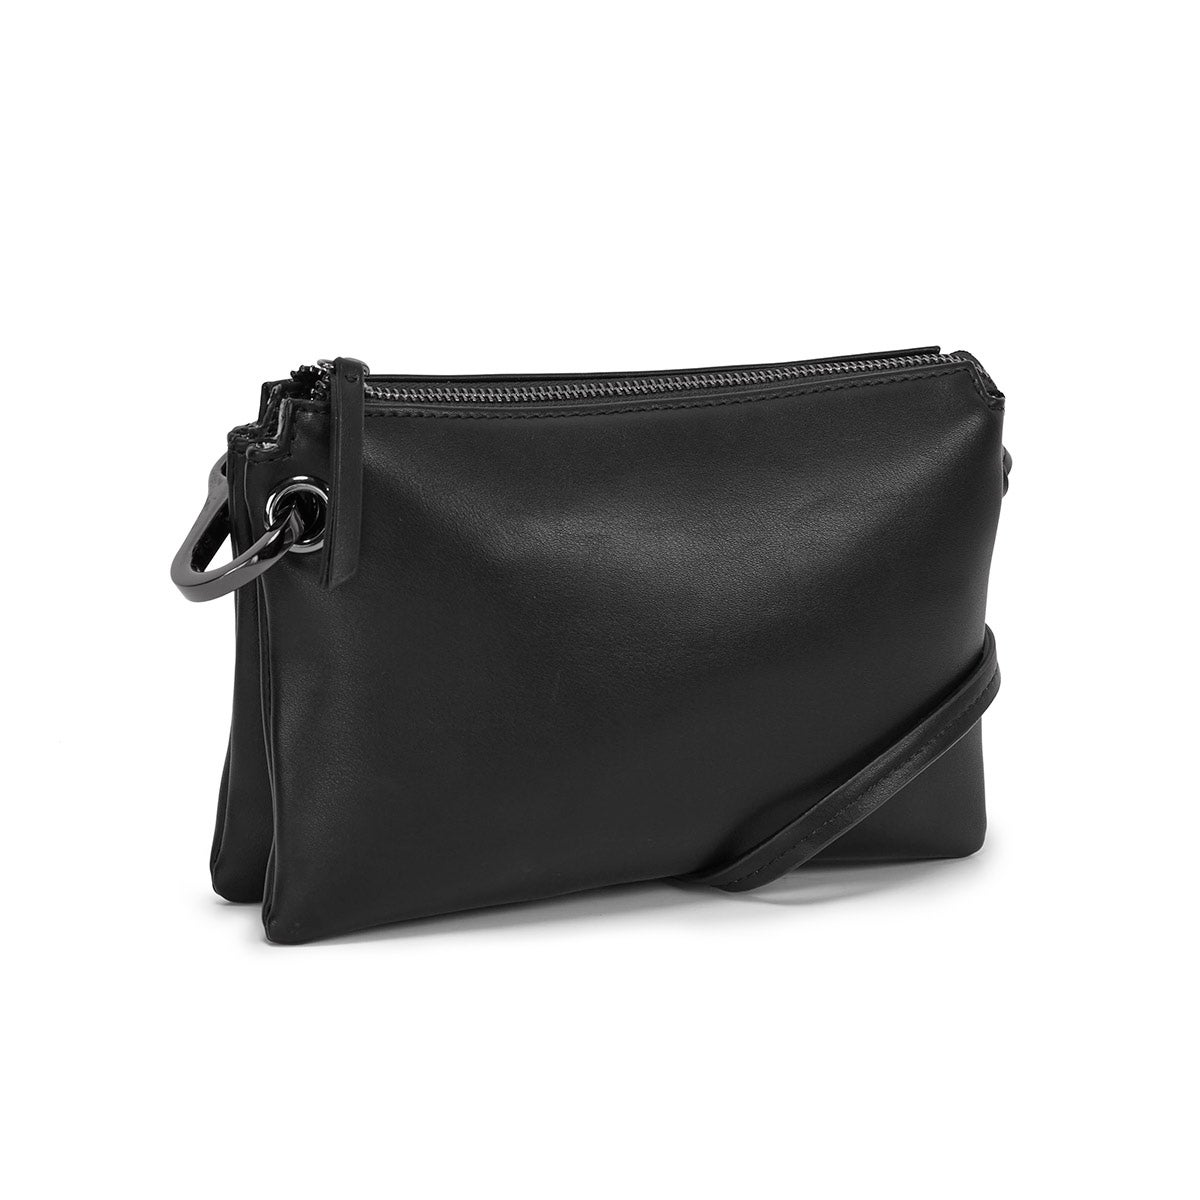 Women's 5380 black mini cross body bag